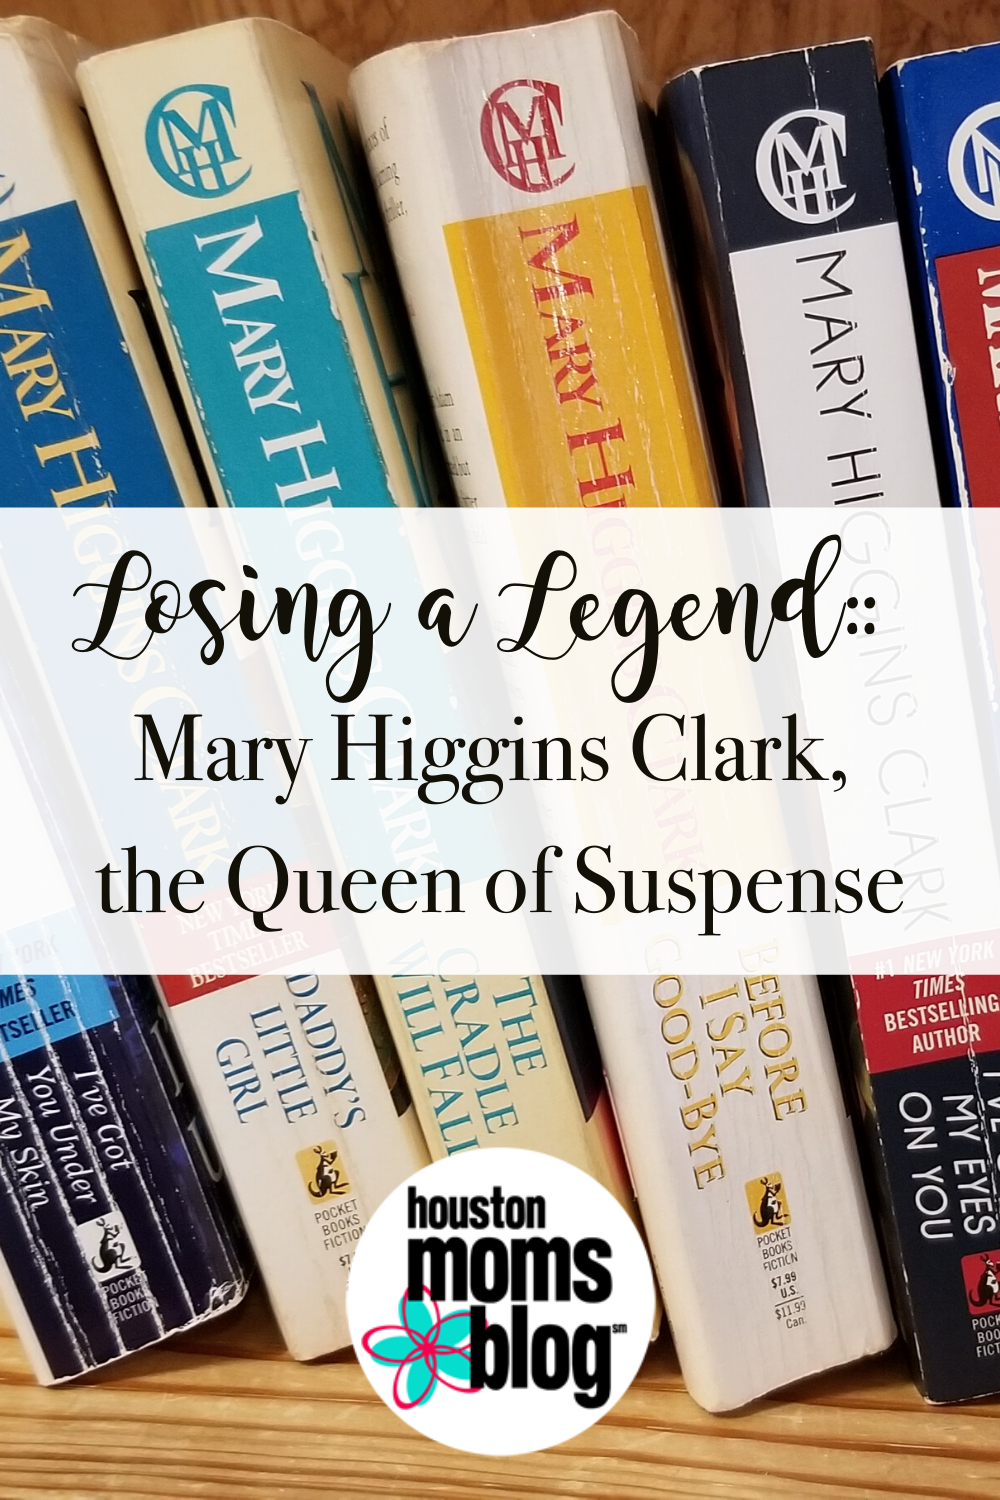 "Houston Moms Blog ""Losing a Legend:: Mary Higgins Clark, the Queen of Suspense"" #houstonmomsblog #momsaroundhouston"